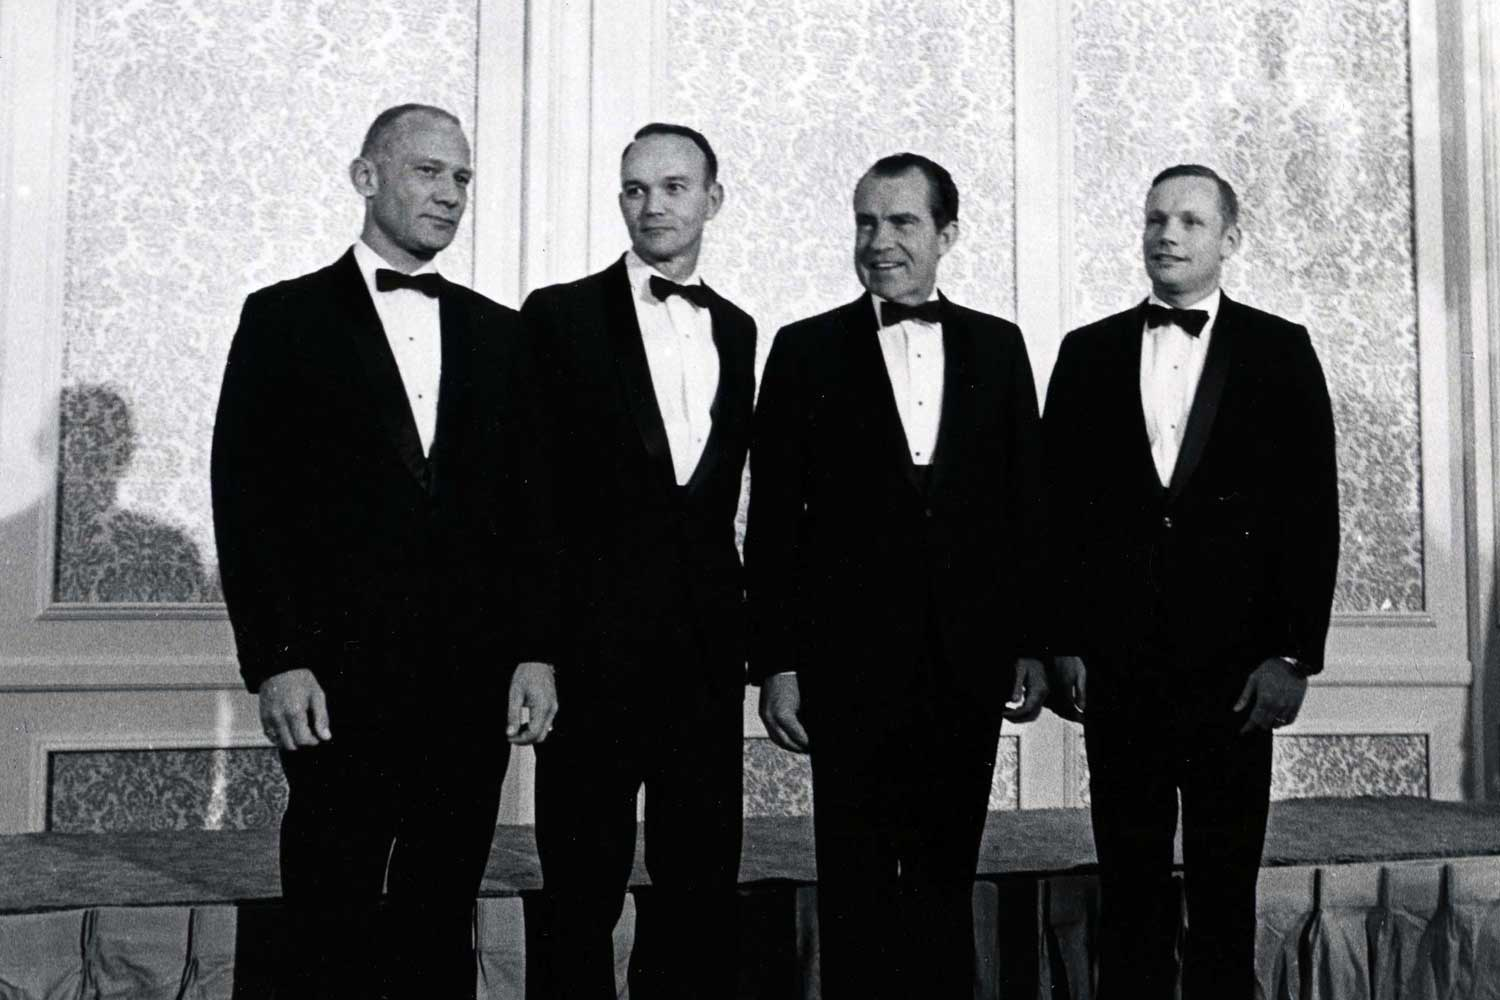 President Nixon and the crew of the Apollo 11. From left to right: Buzz Aldrin, Michael Collins, President Nixon, and Neil Armstrong (Image: Richard Nixon Space Foundation)